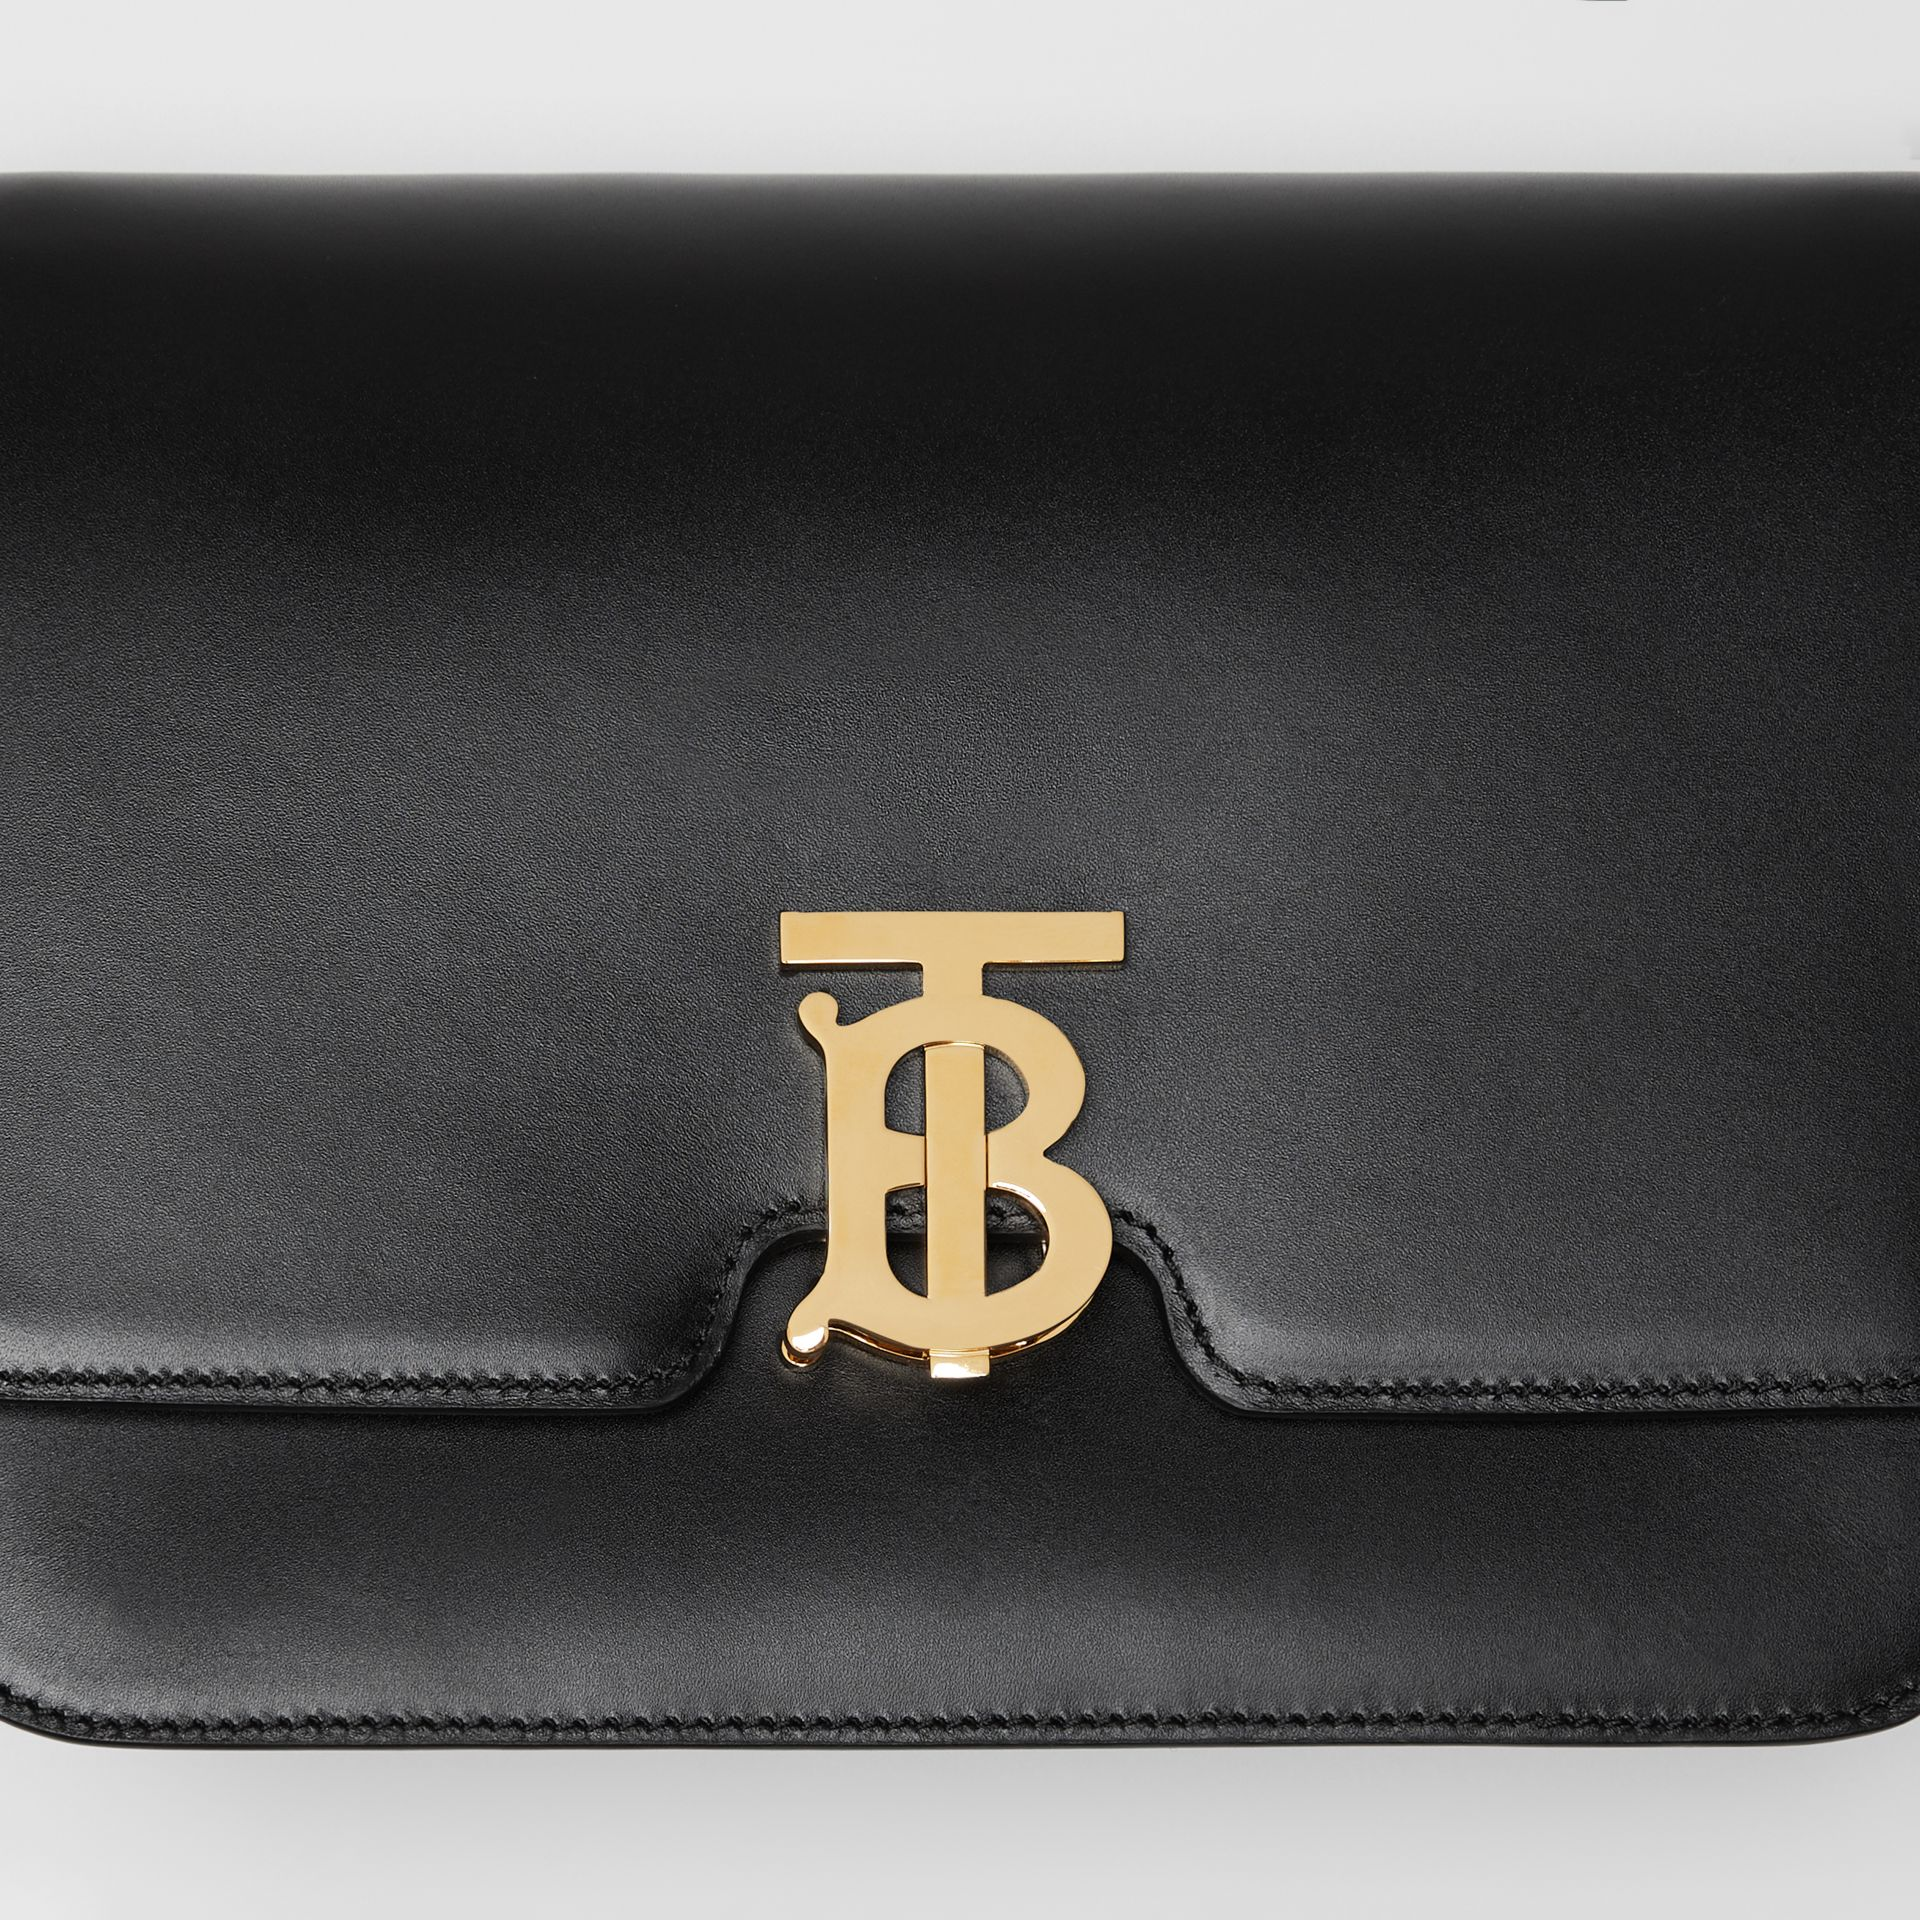 Medium Leather TB Bag in Black - Women | Burberry Canada - gallery image 8